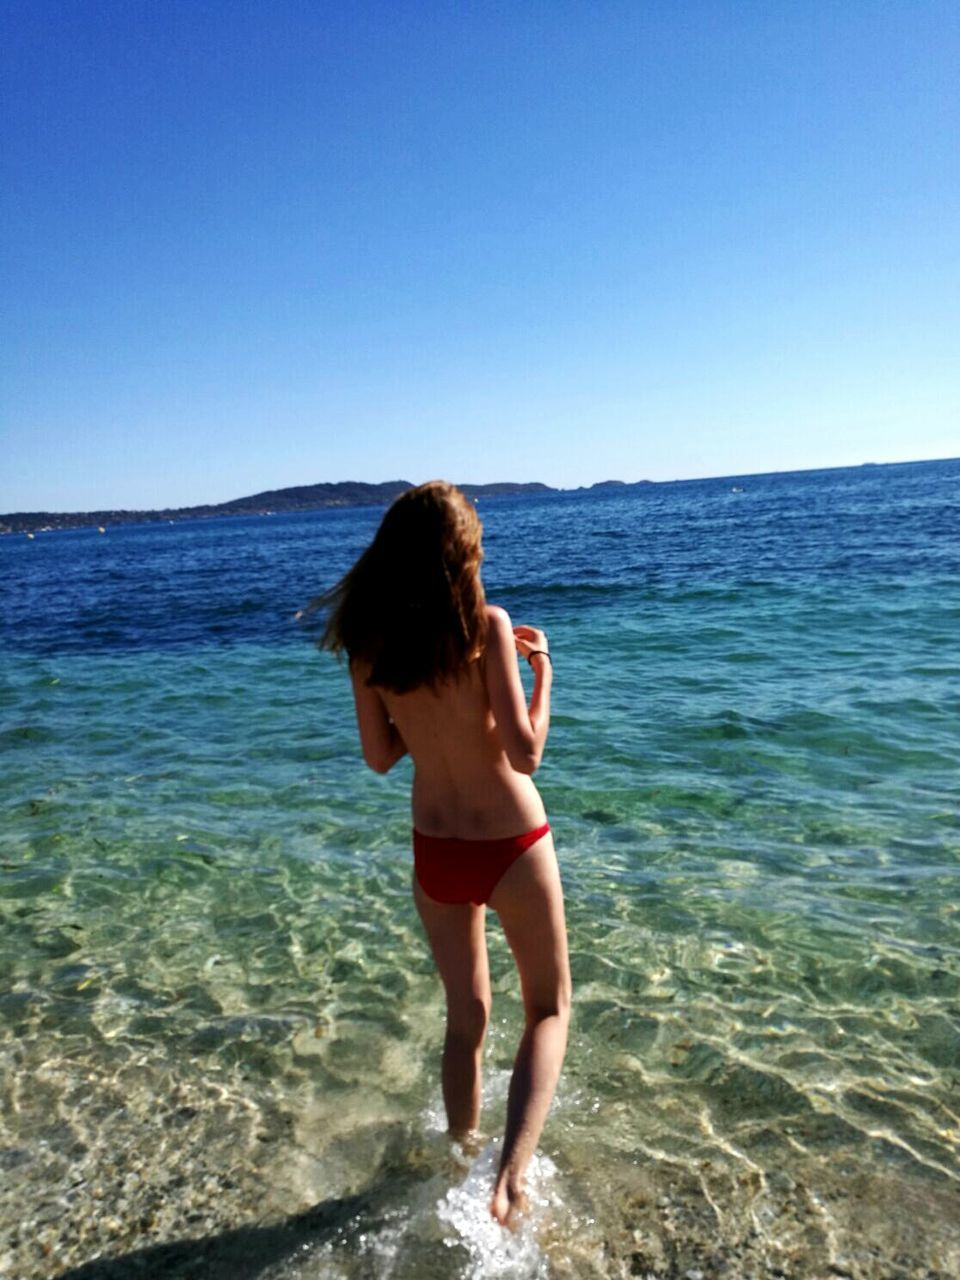 sea, real people, clear sky, one person, horizon over water, water, standing, leisure activity, nature, beach, lifestyles, bikini, beauty in nature, young adult, scenics, rear view, young women, full length, day, outdoors, sky, ankle deep in water